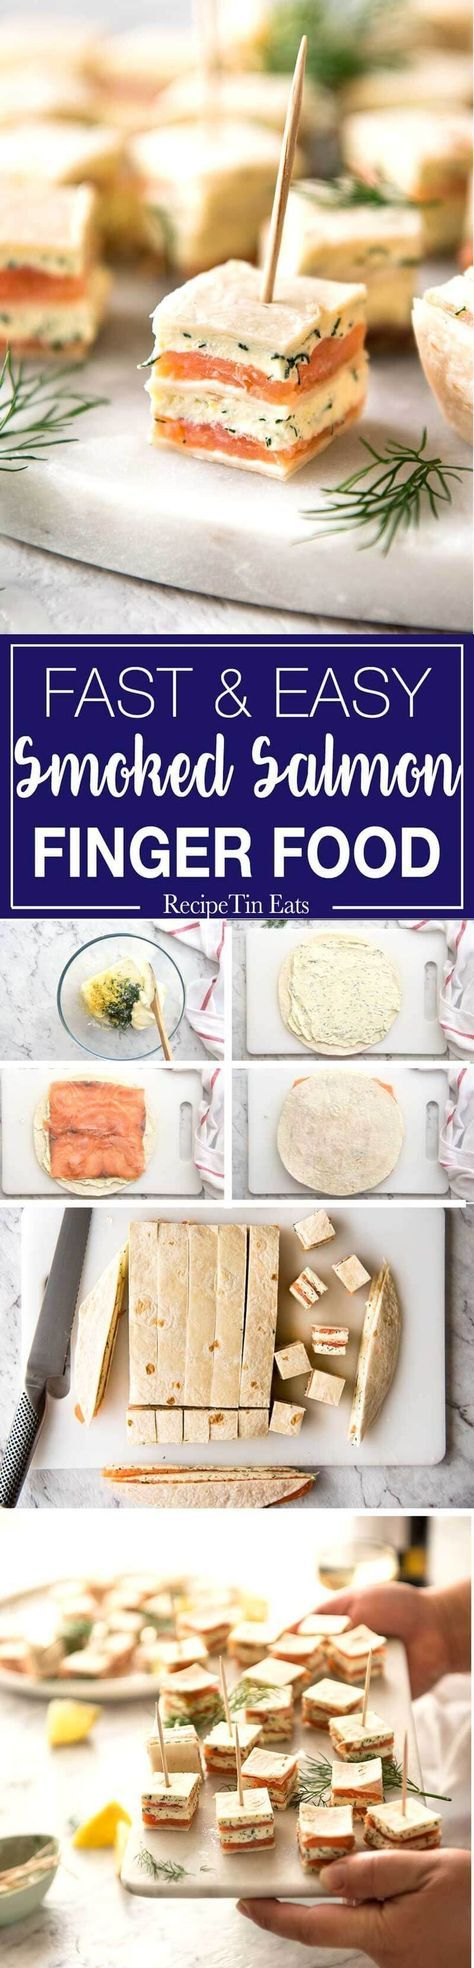 Smoked Salmon Appetizer fantastic for gatherings - no fiddly assembly, served at room temperature, looks elegant and tastes SO GOOD! www.recipetineats...